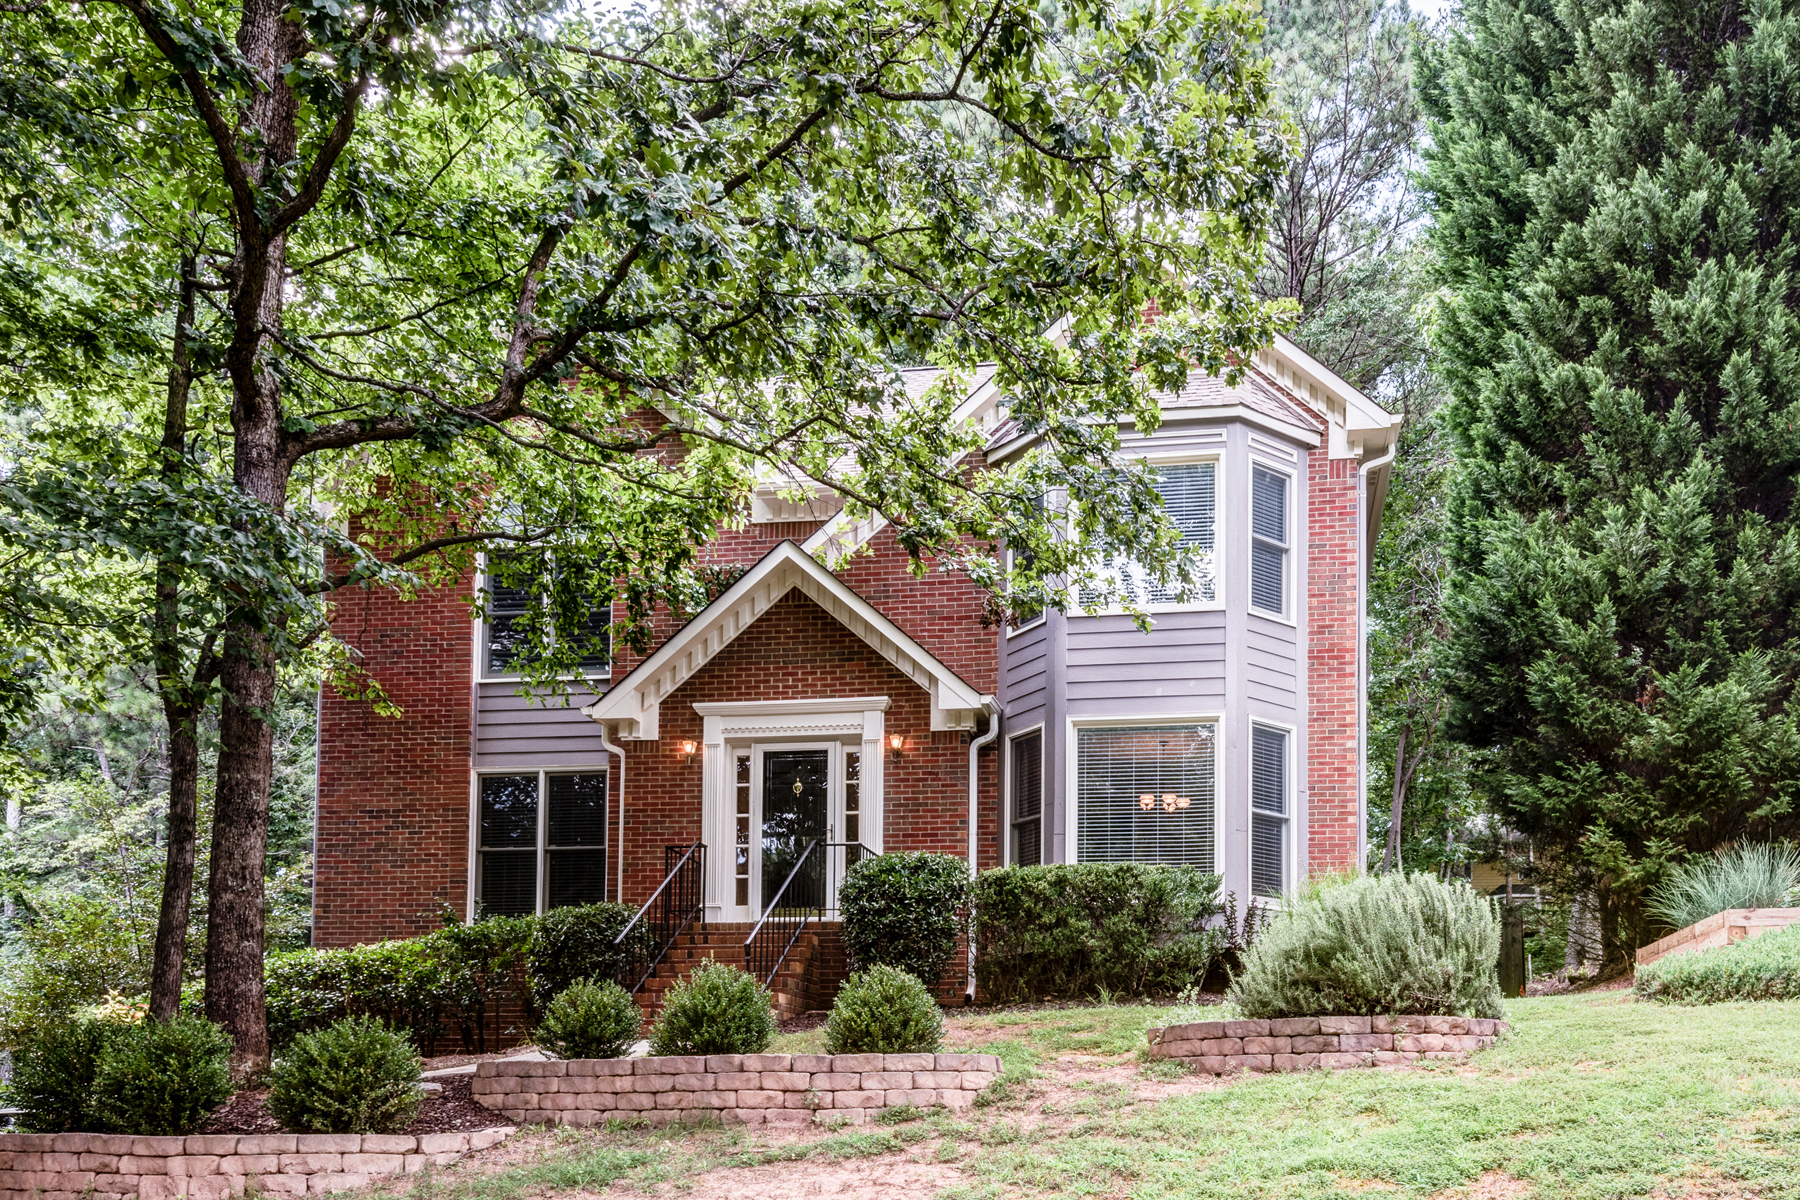 Villa per Vendita alle ore Traditional Home In Great Community, Excellent School District 4410 Oklahoma Way NW Kennesaw, Georgia, 30152 Stati Uniti